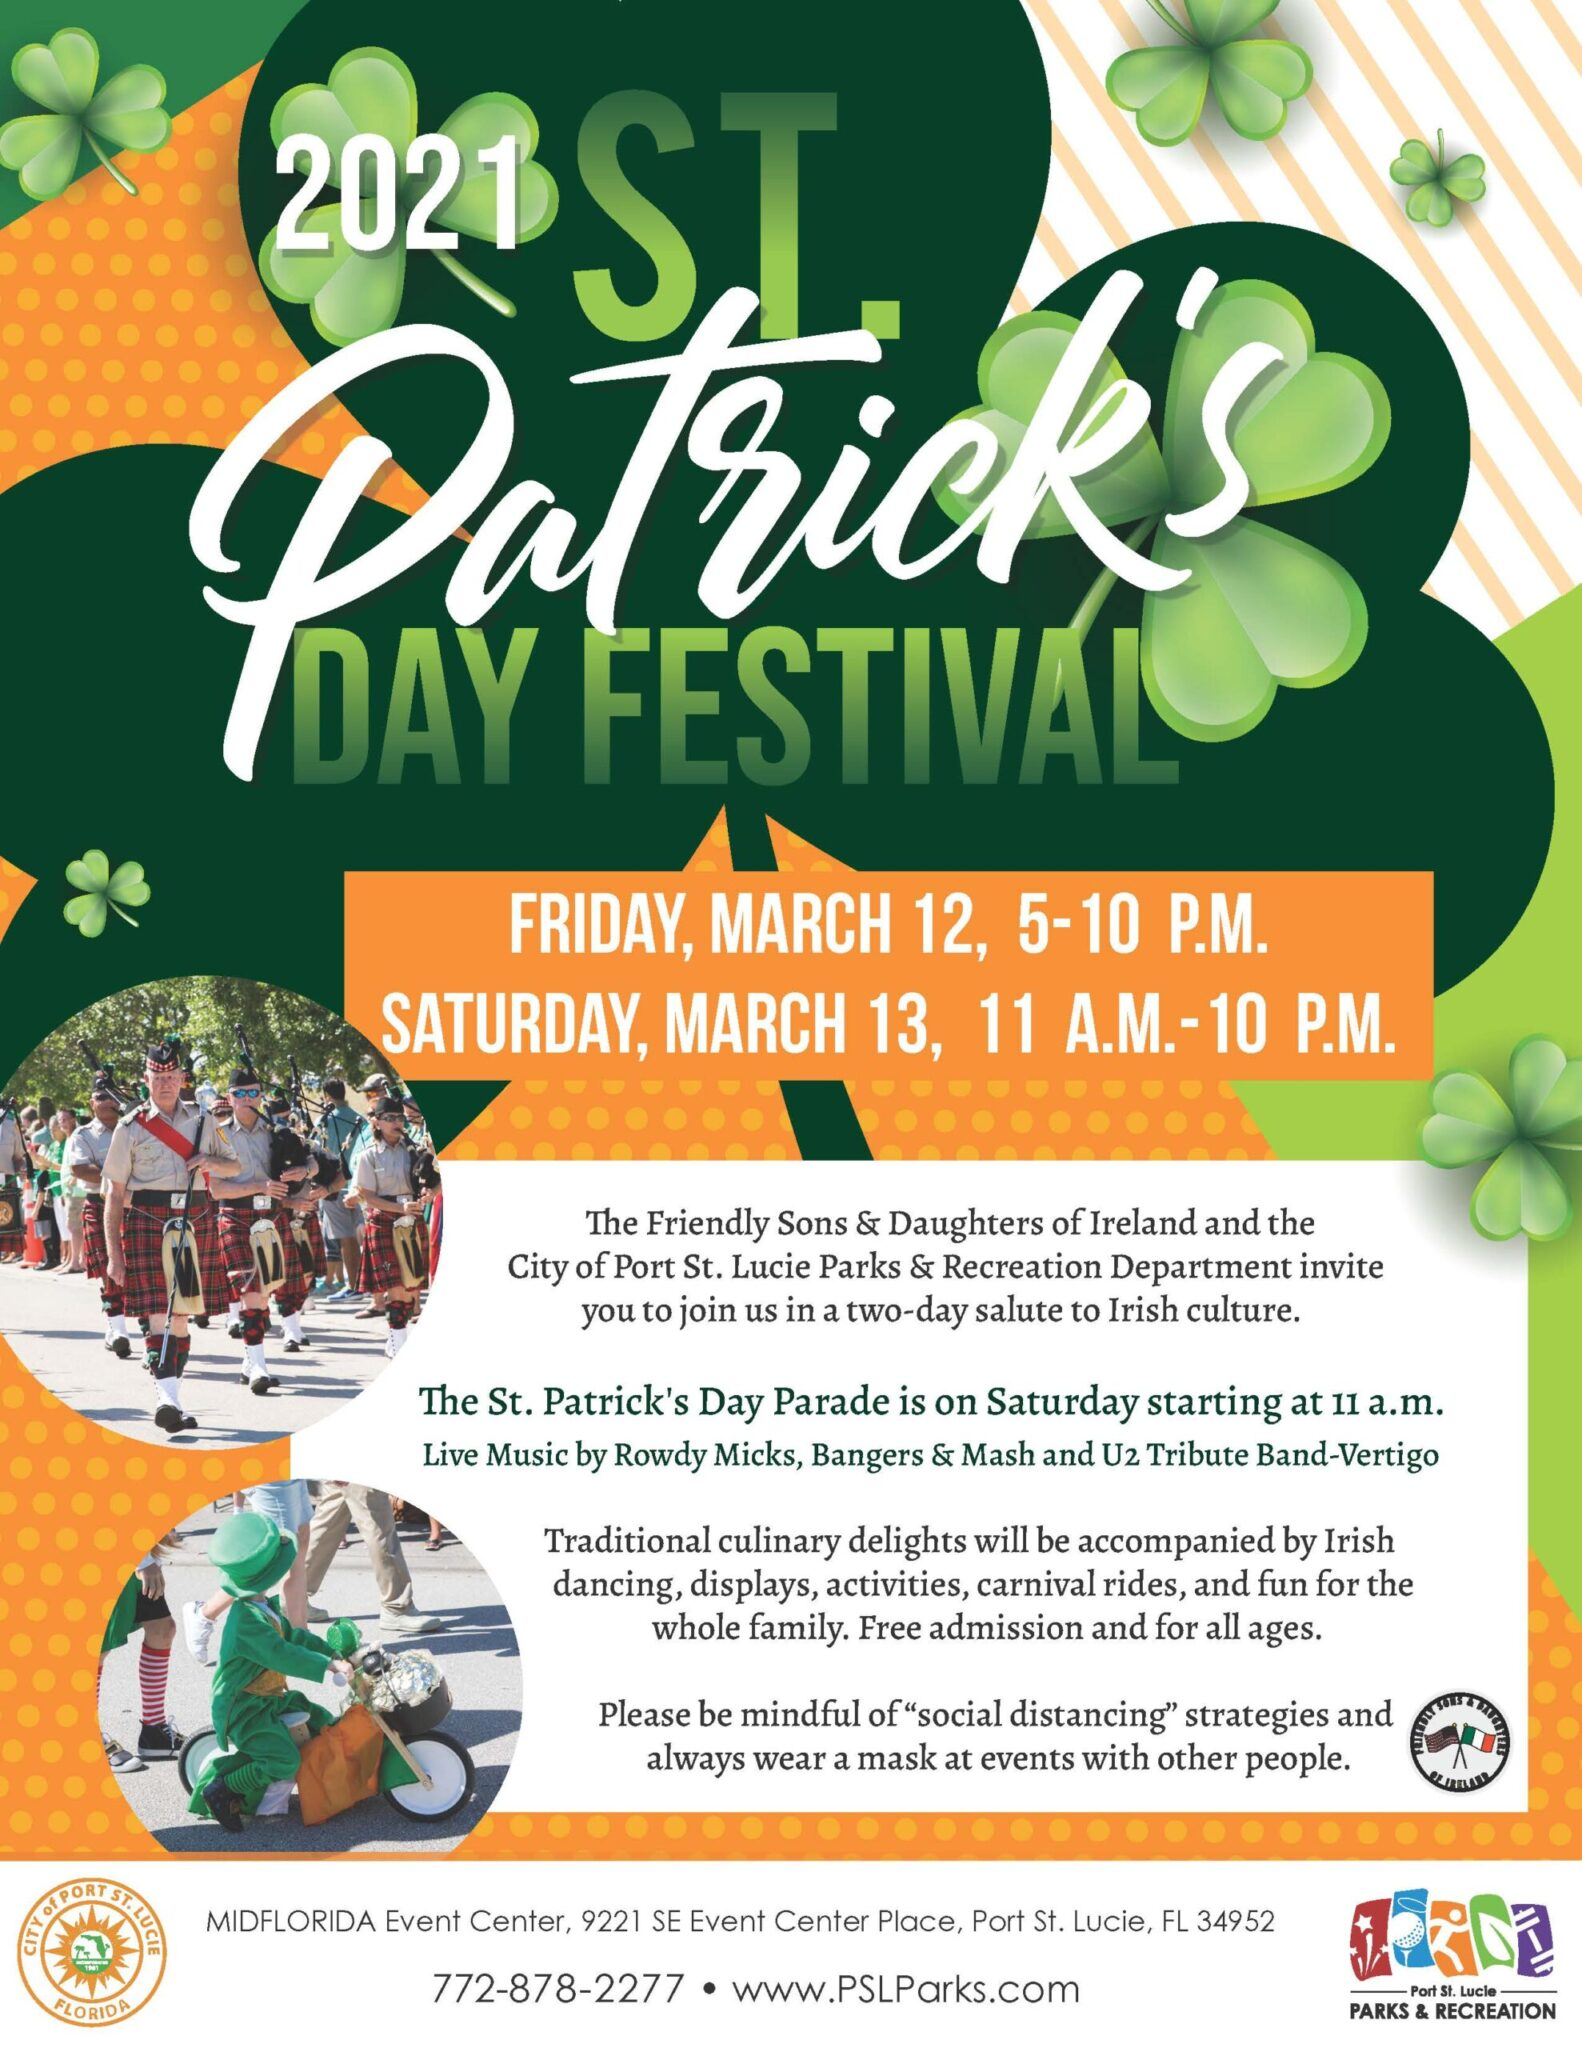 Port St. Lucie St. Patrick's Day Parade 2021